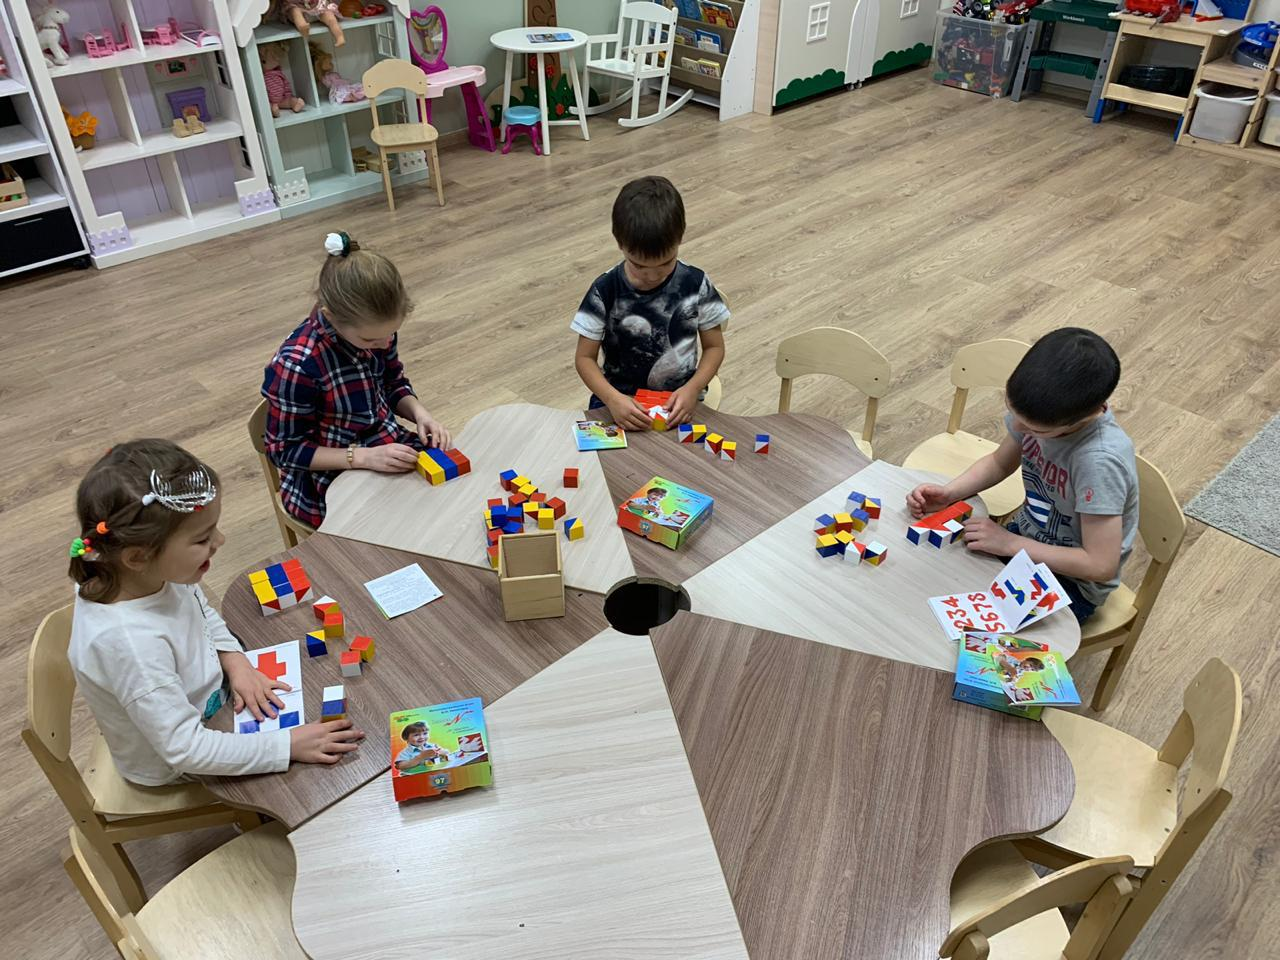 childs day care center - HD1280×960